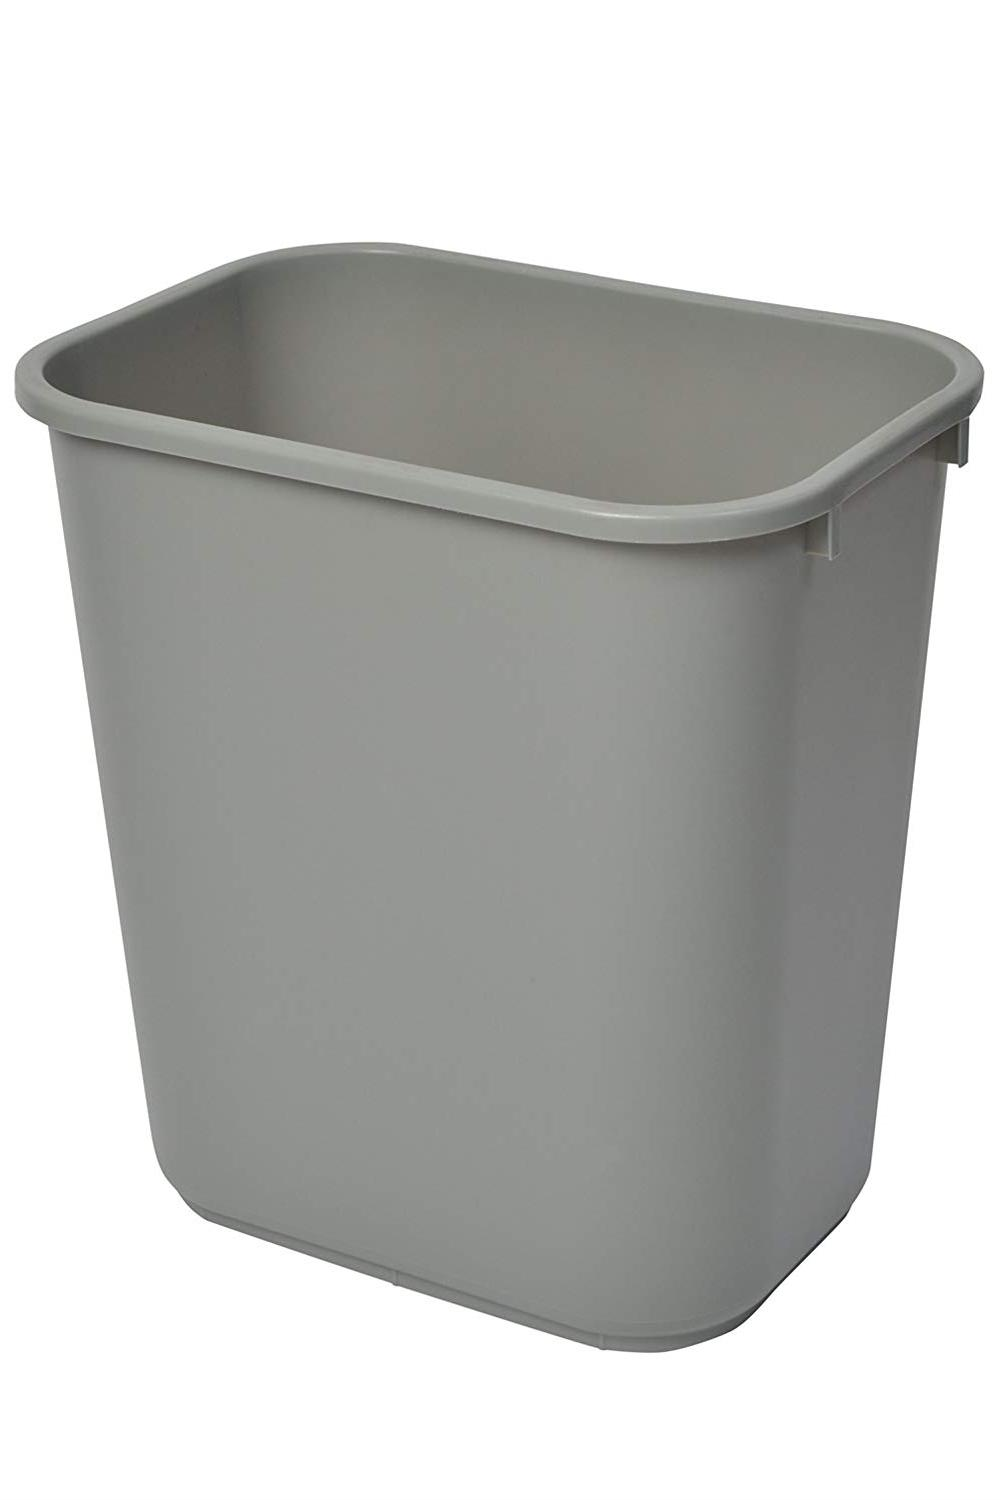 1037gy 10 gallon waste basket